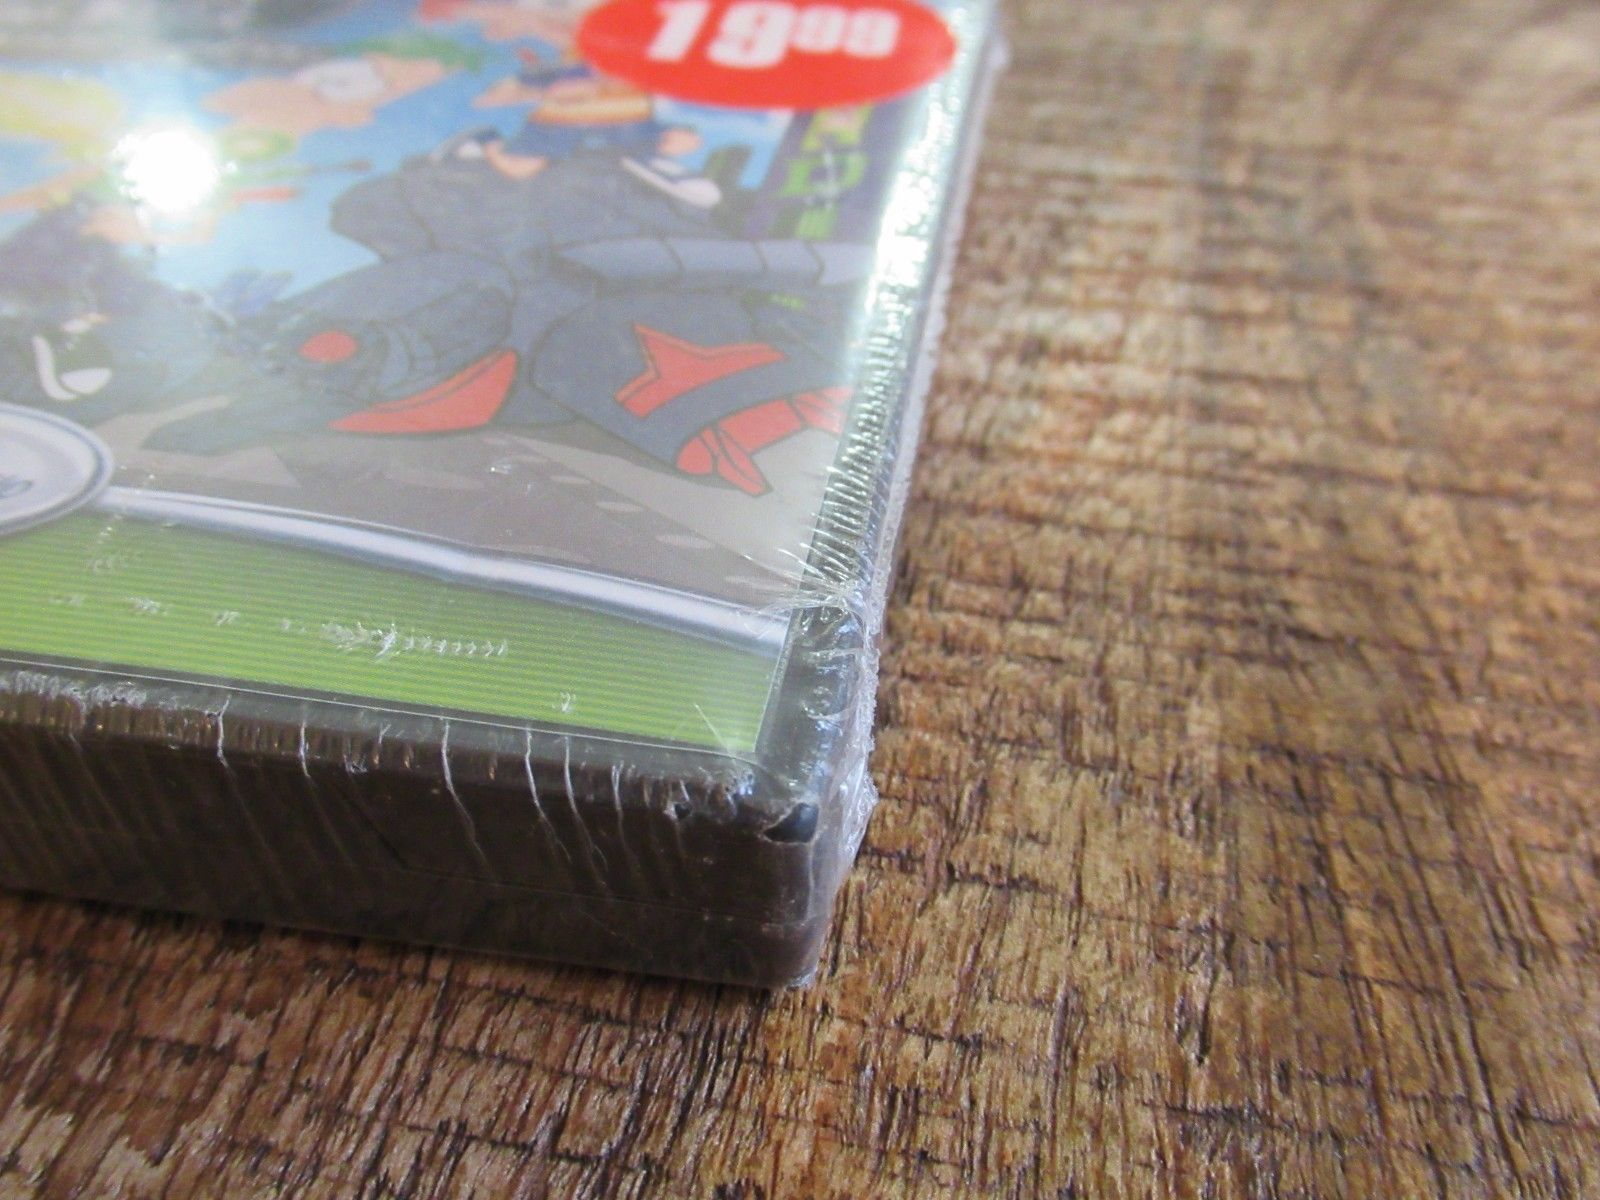 Phineas and Ferb: Across the 2nd Dimension (Nintendo DS, 2011) Sealed image 2